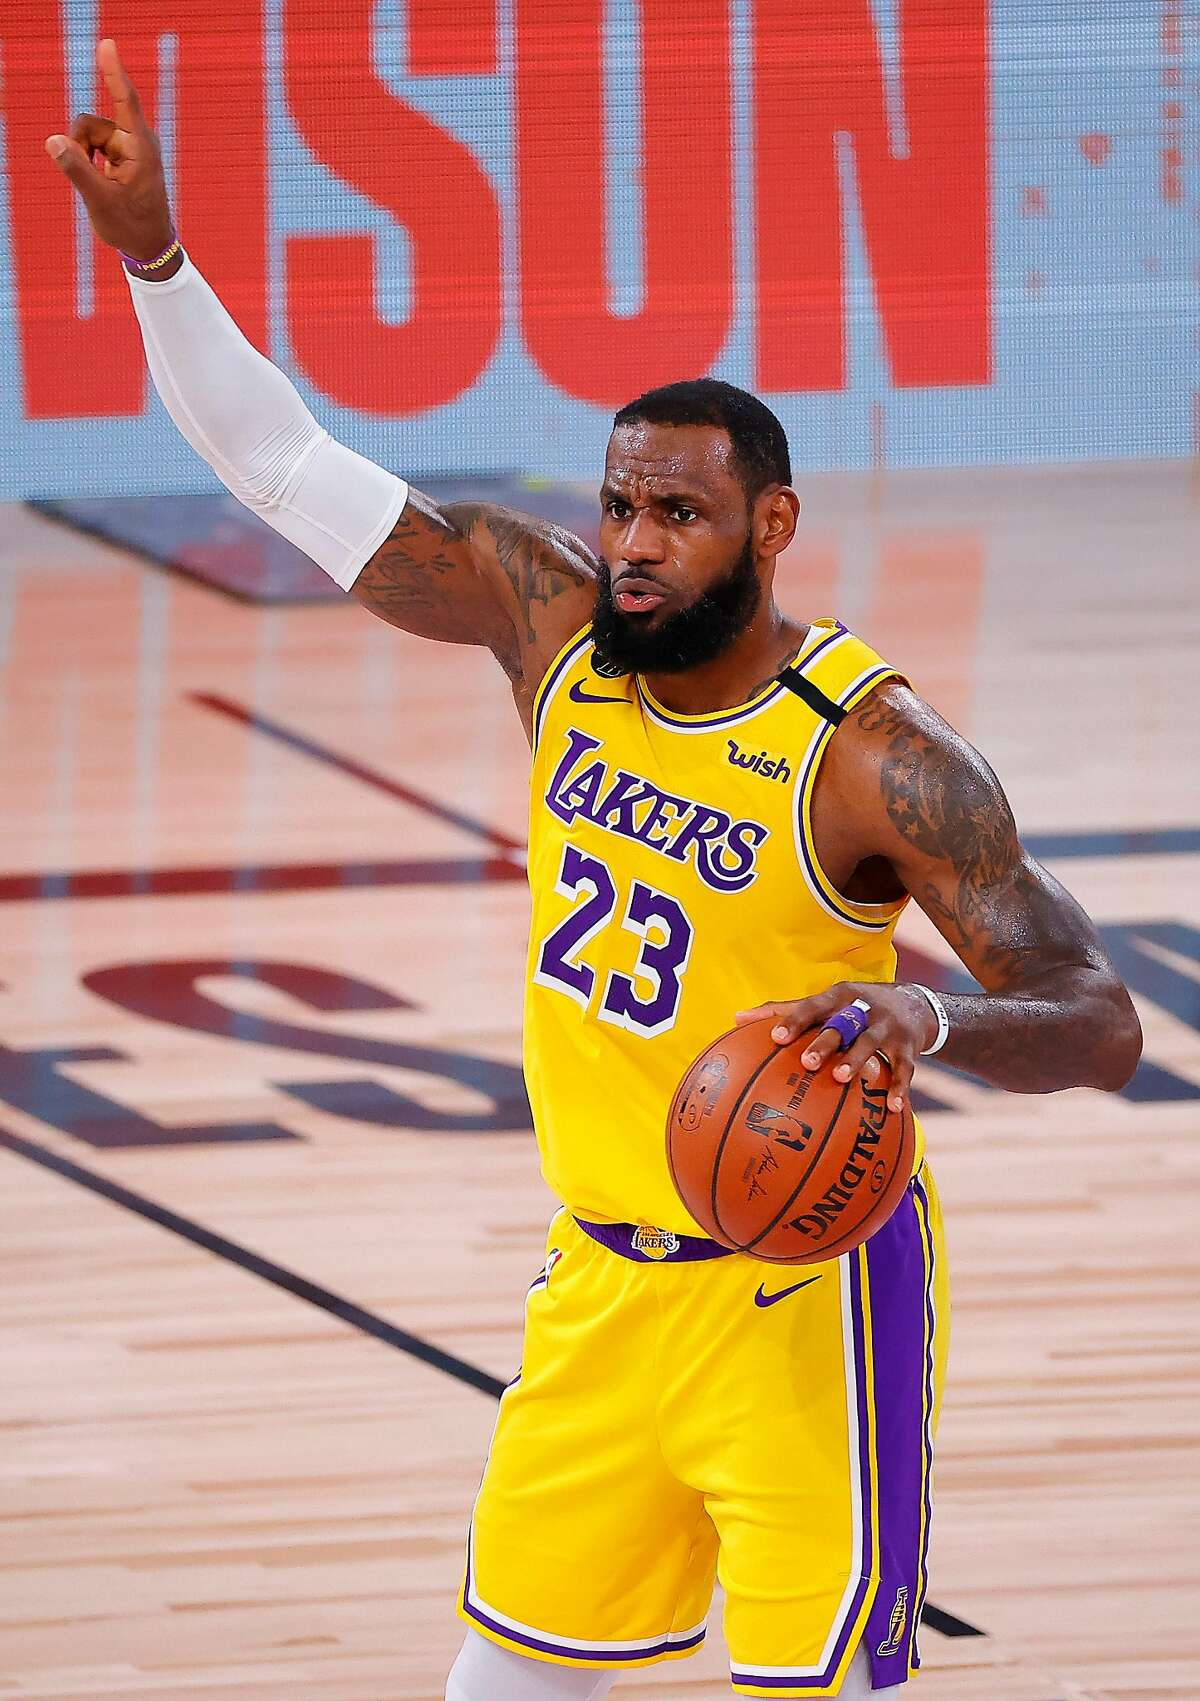 LeBron James can impress L.A. fans one way: win a title.